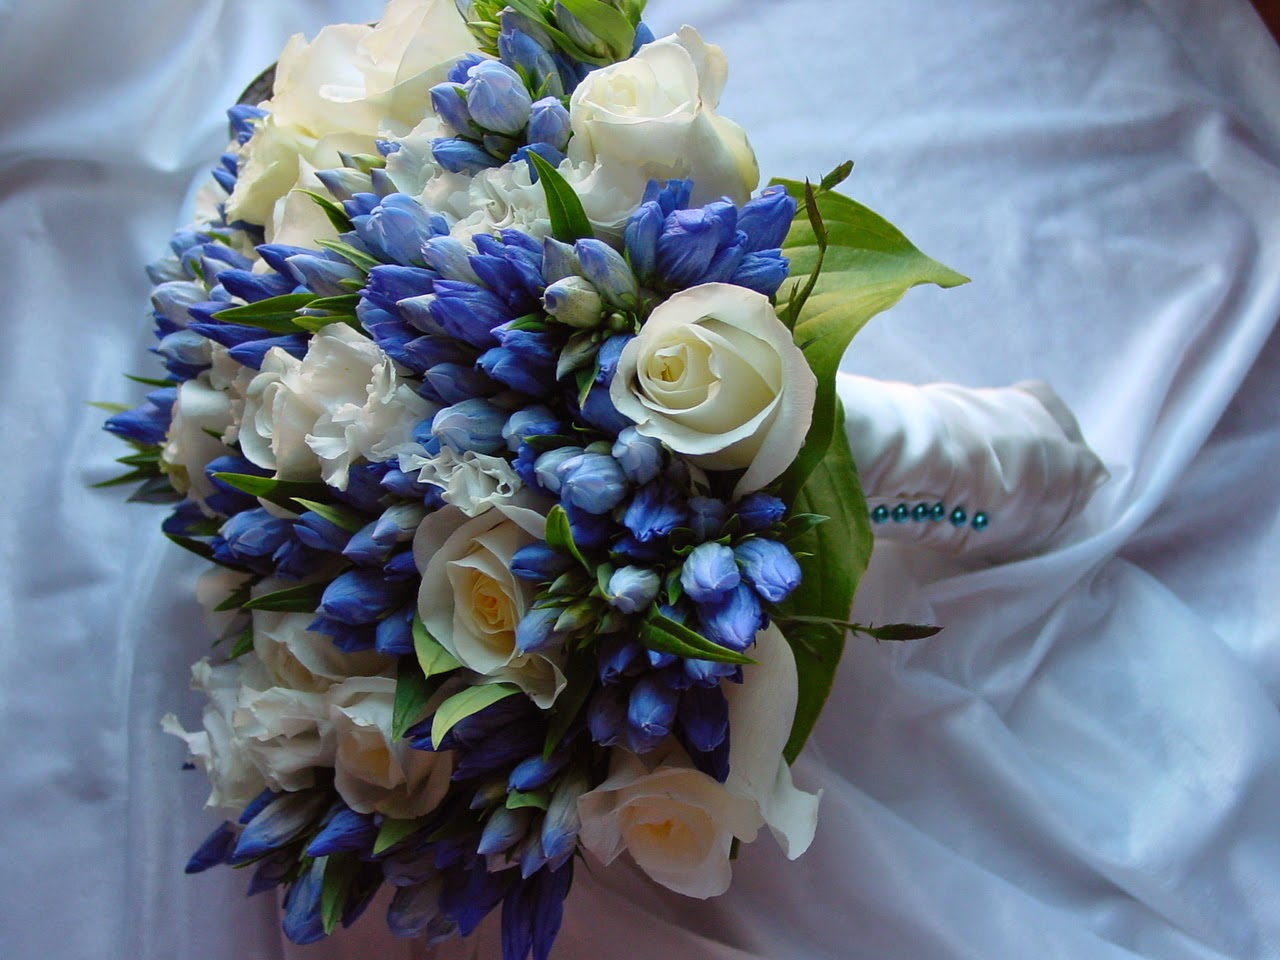 delphinium bouquet - photo #42